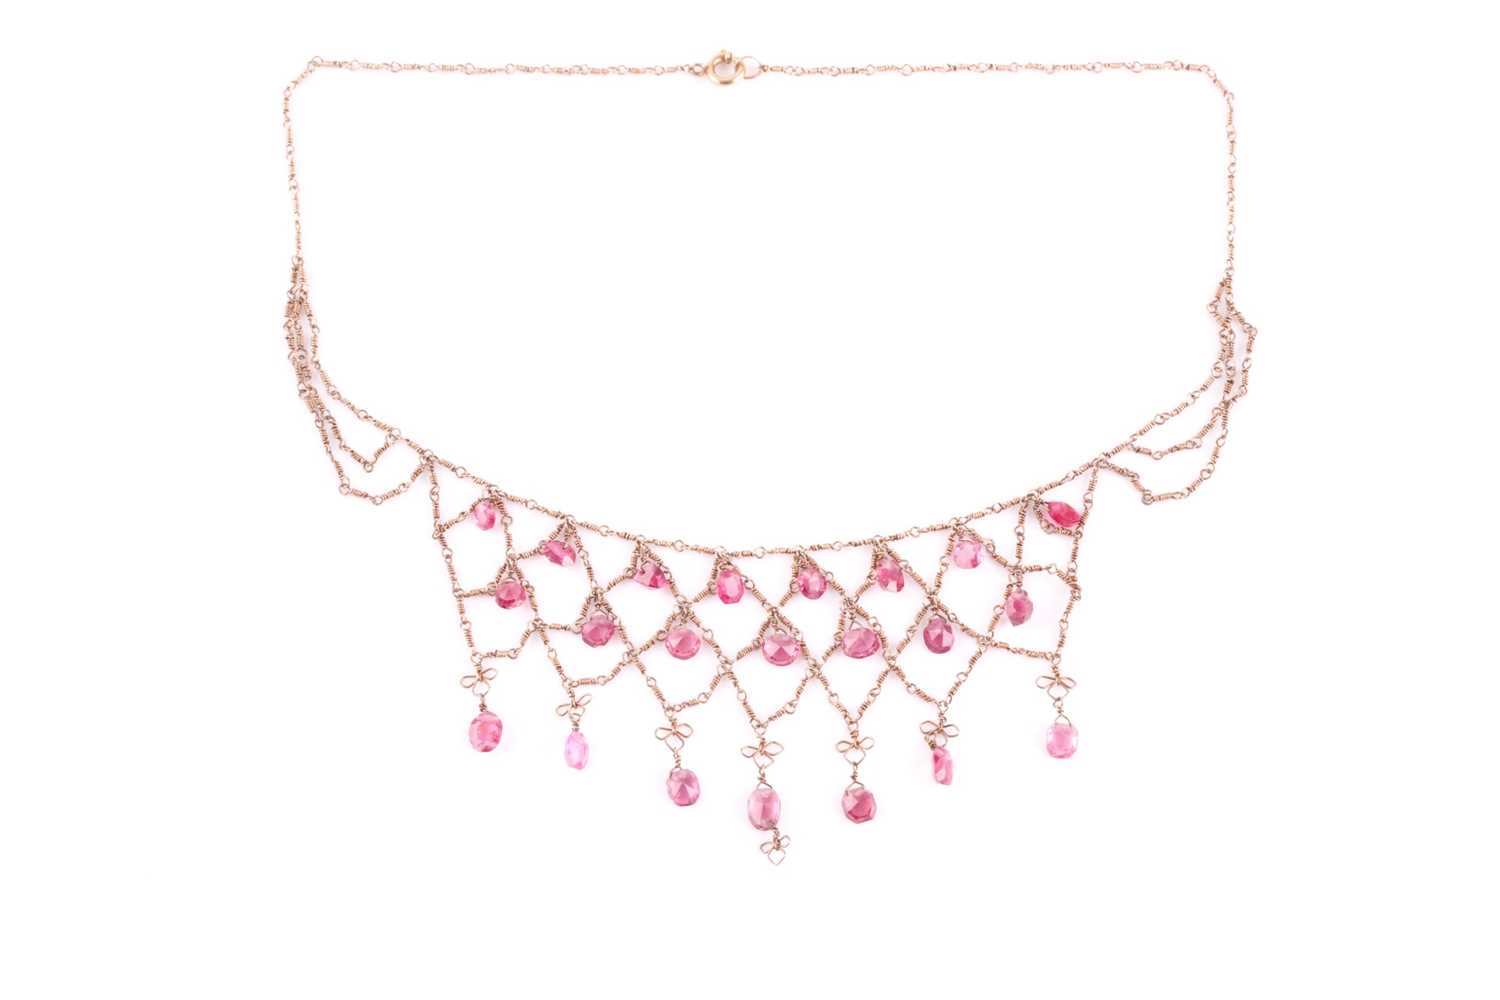 A yellow metal and pink spinel fringe necklace, suspended with faceted pink spinels, on twist-link